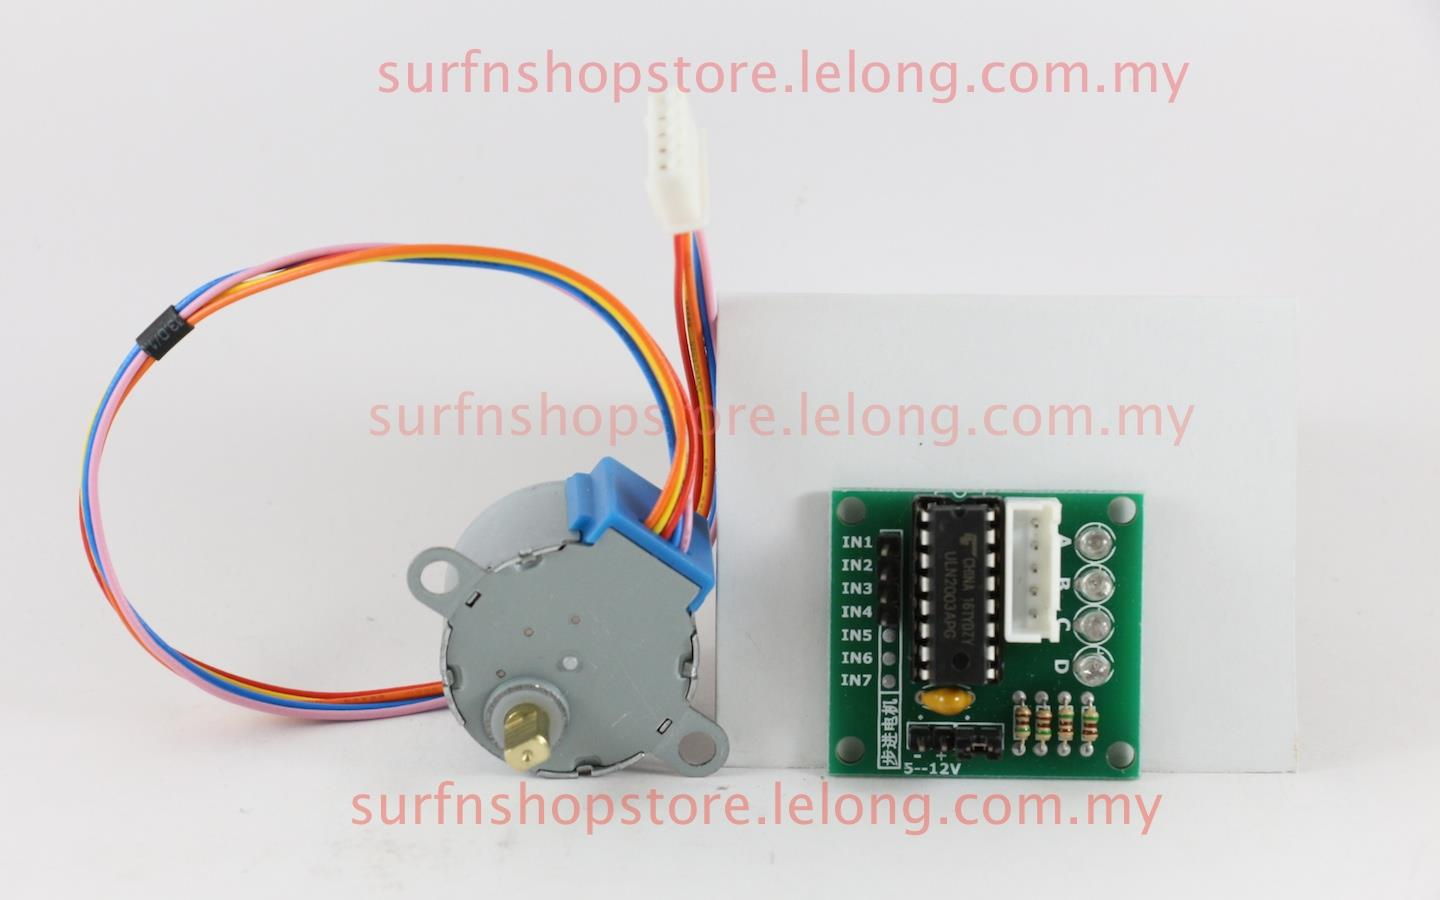 Phase V Byj Stepper Motor Uln Driver Board Arduino Surfnshopstore Surfnshopstore on L293d Motor Shield Arduino Code